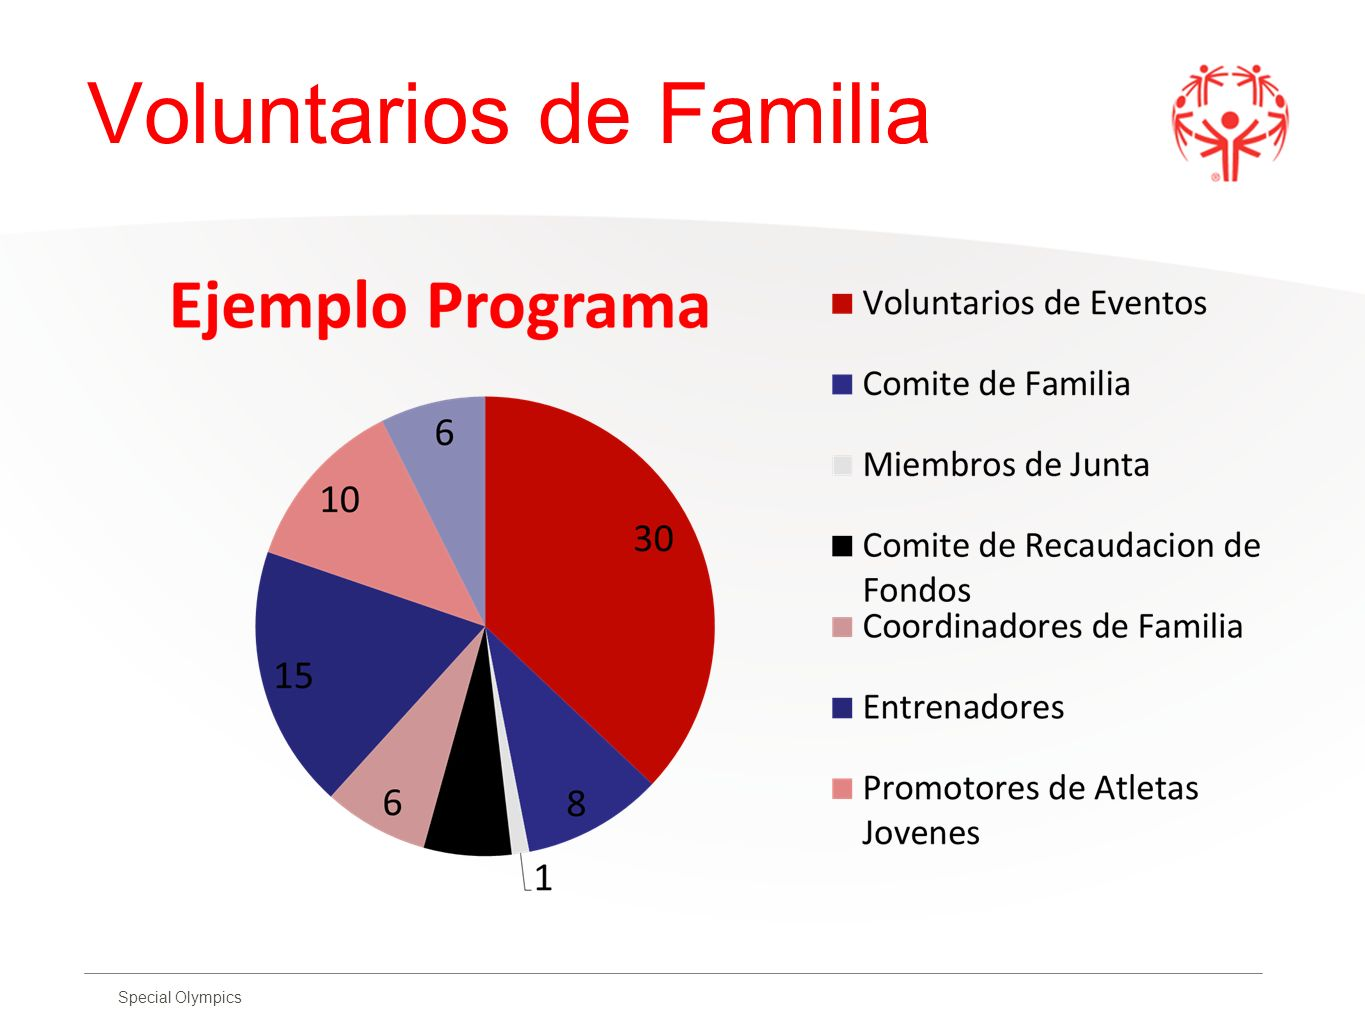 Voluntarios de Familia